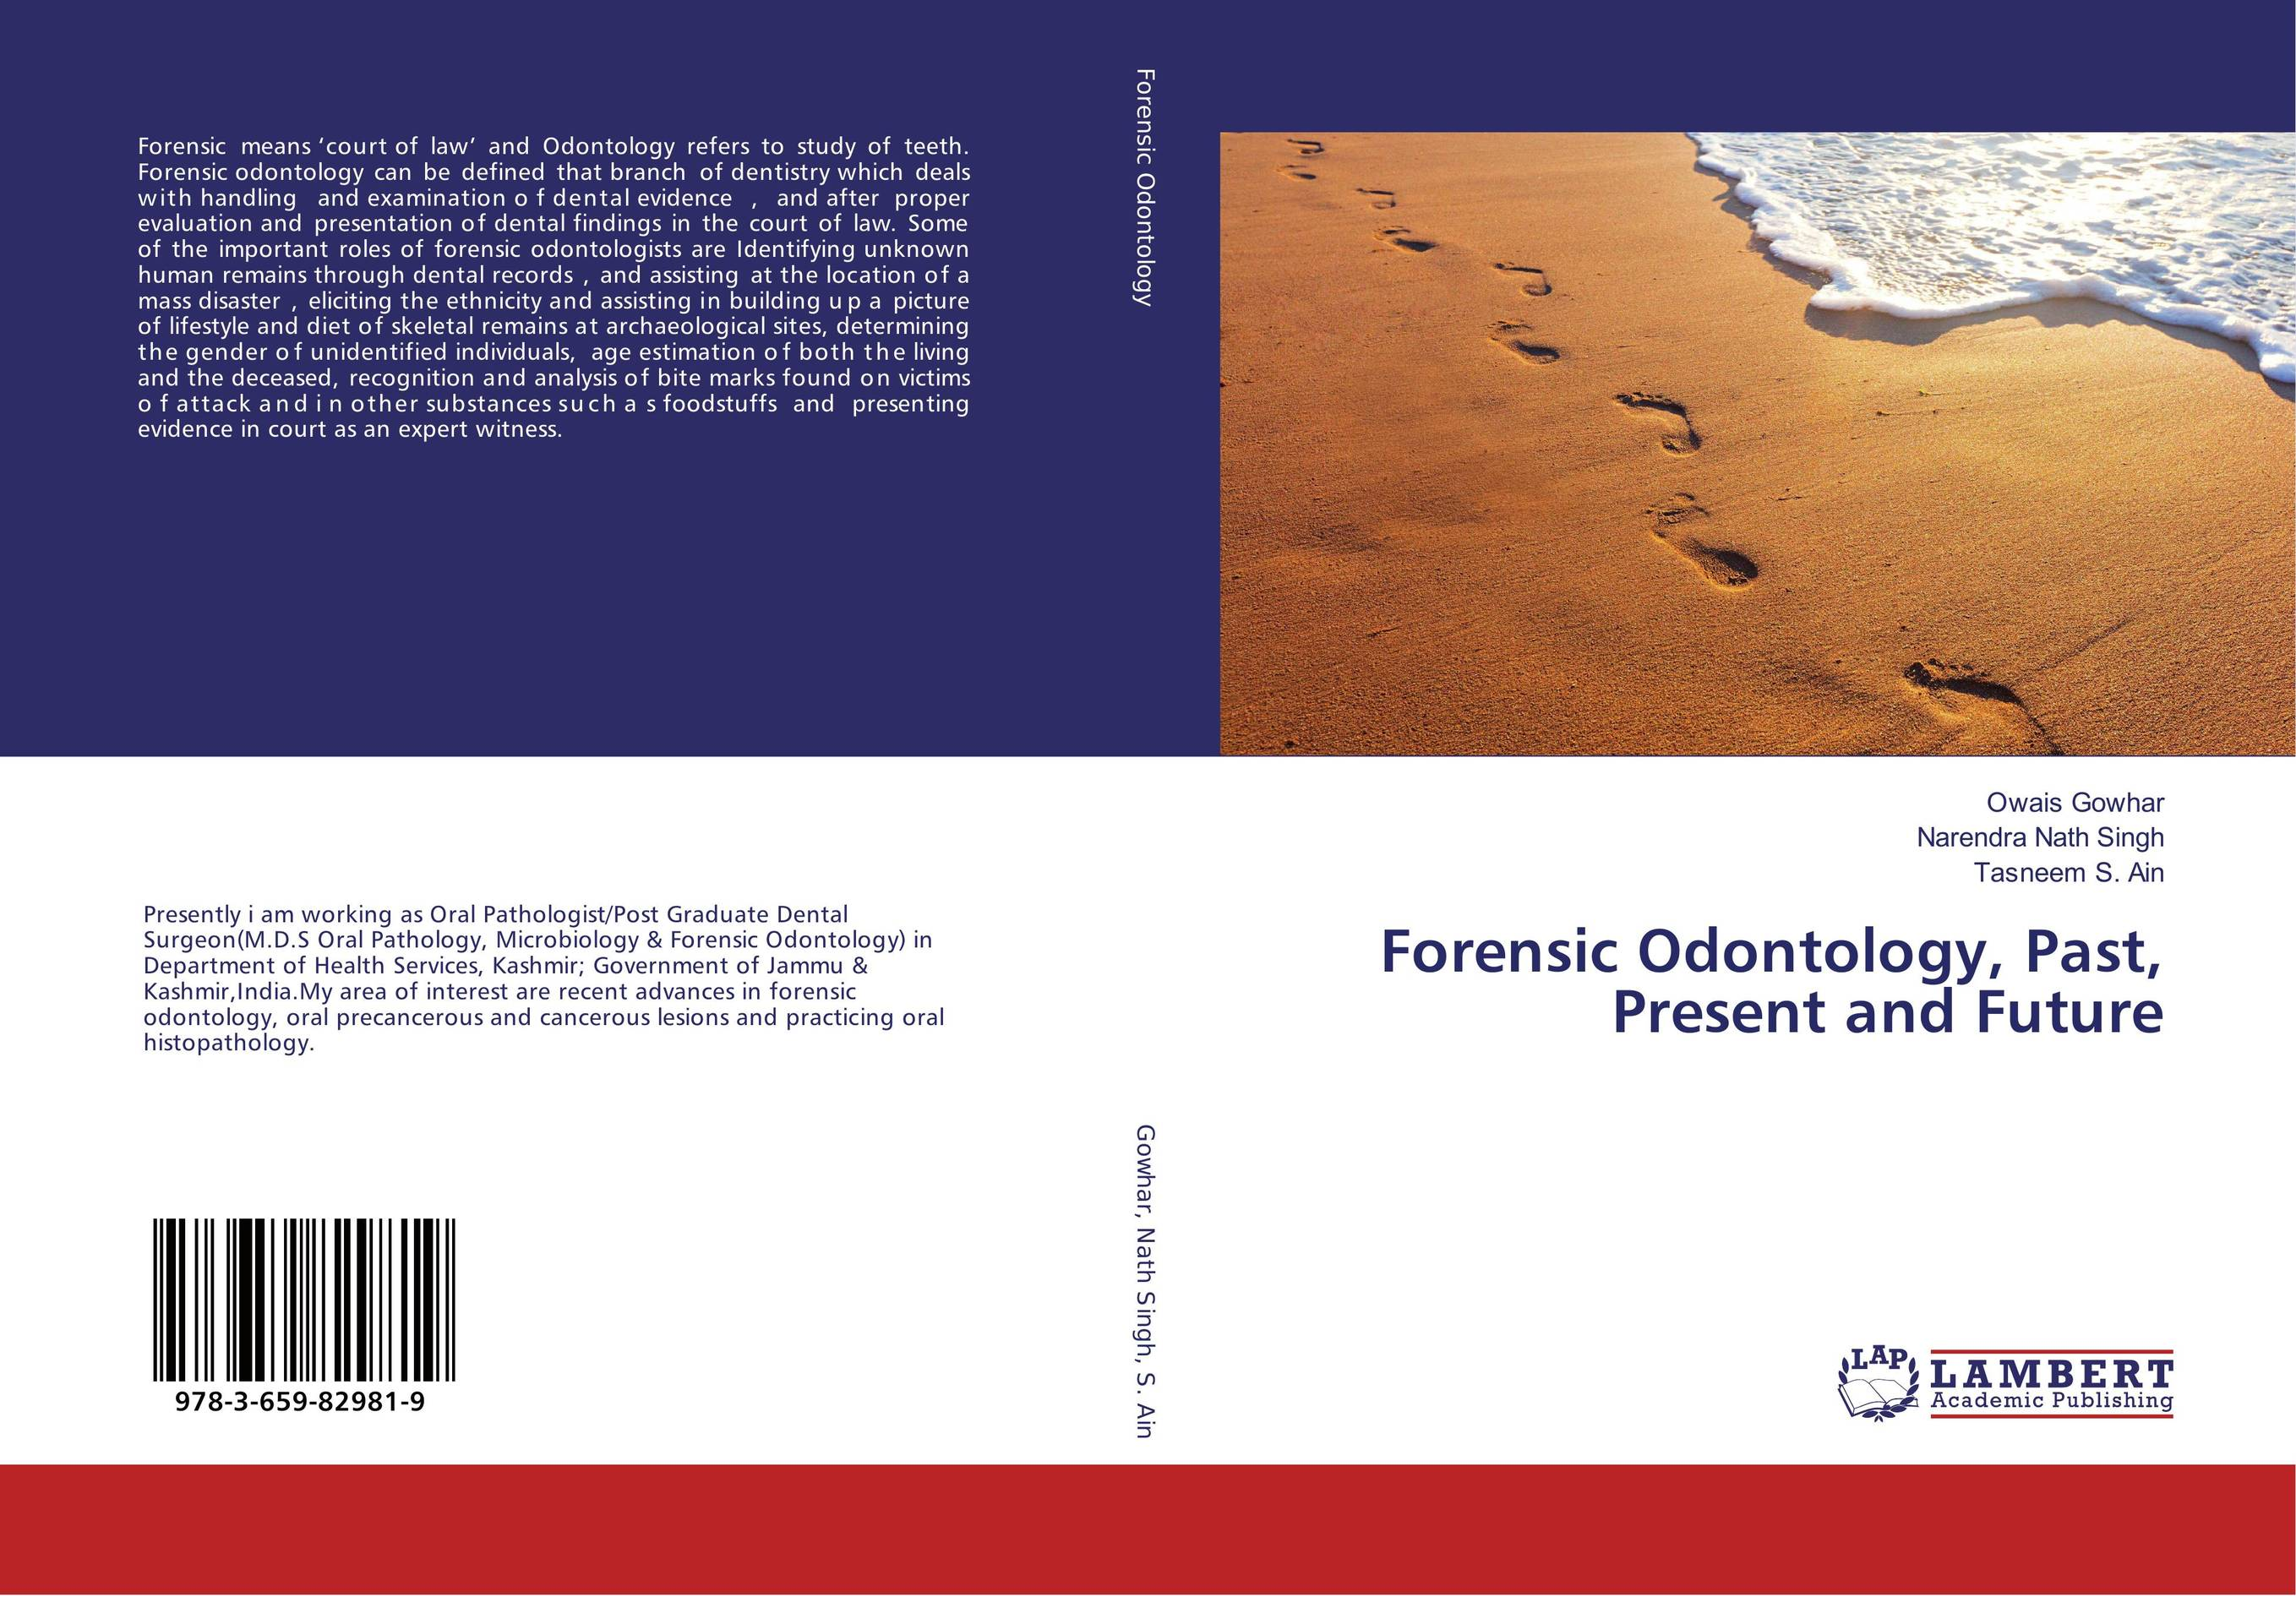 Forensic Odontology, Past, Present and Future karanprakash singh ramanpreet kaur bhullar and sumit kochhar forensic dentistry teeth and their secrets